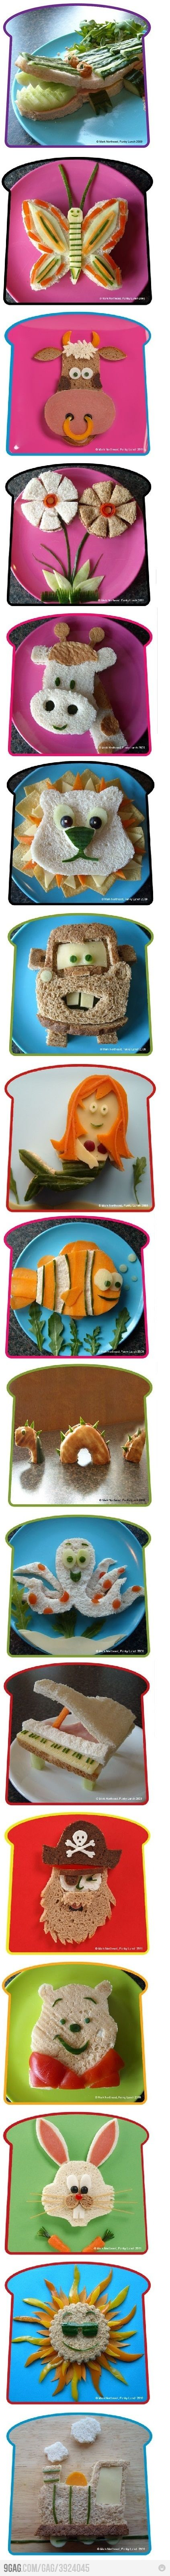 food for kids- darling!: Fun Lunches, Fun Food, Kids Lunches, Kids Sandwiches, For Kids, Lunches Ideas, Sandwiches Ideas, Food Art, Kids Food